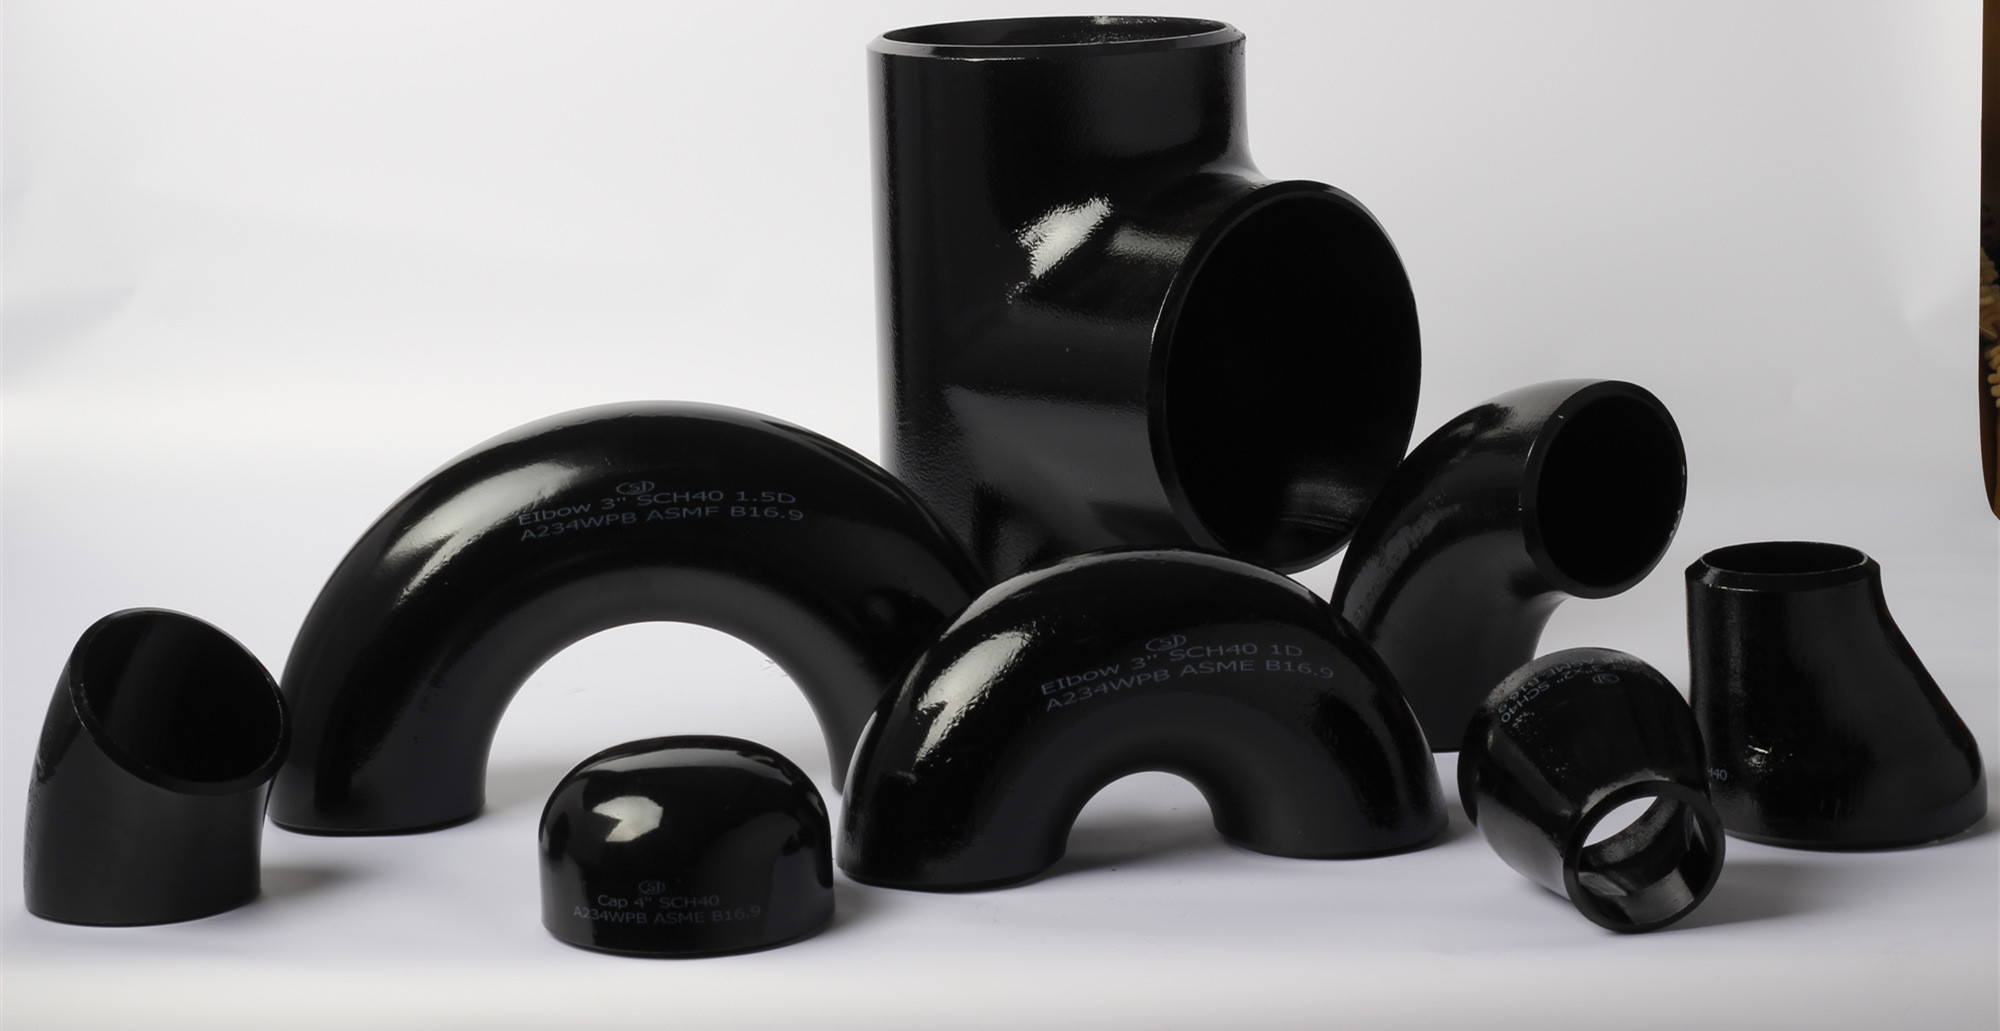 JS FITTINGS PIPE FITTINGS